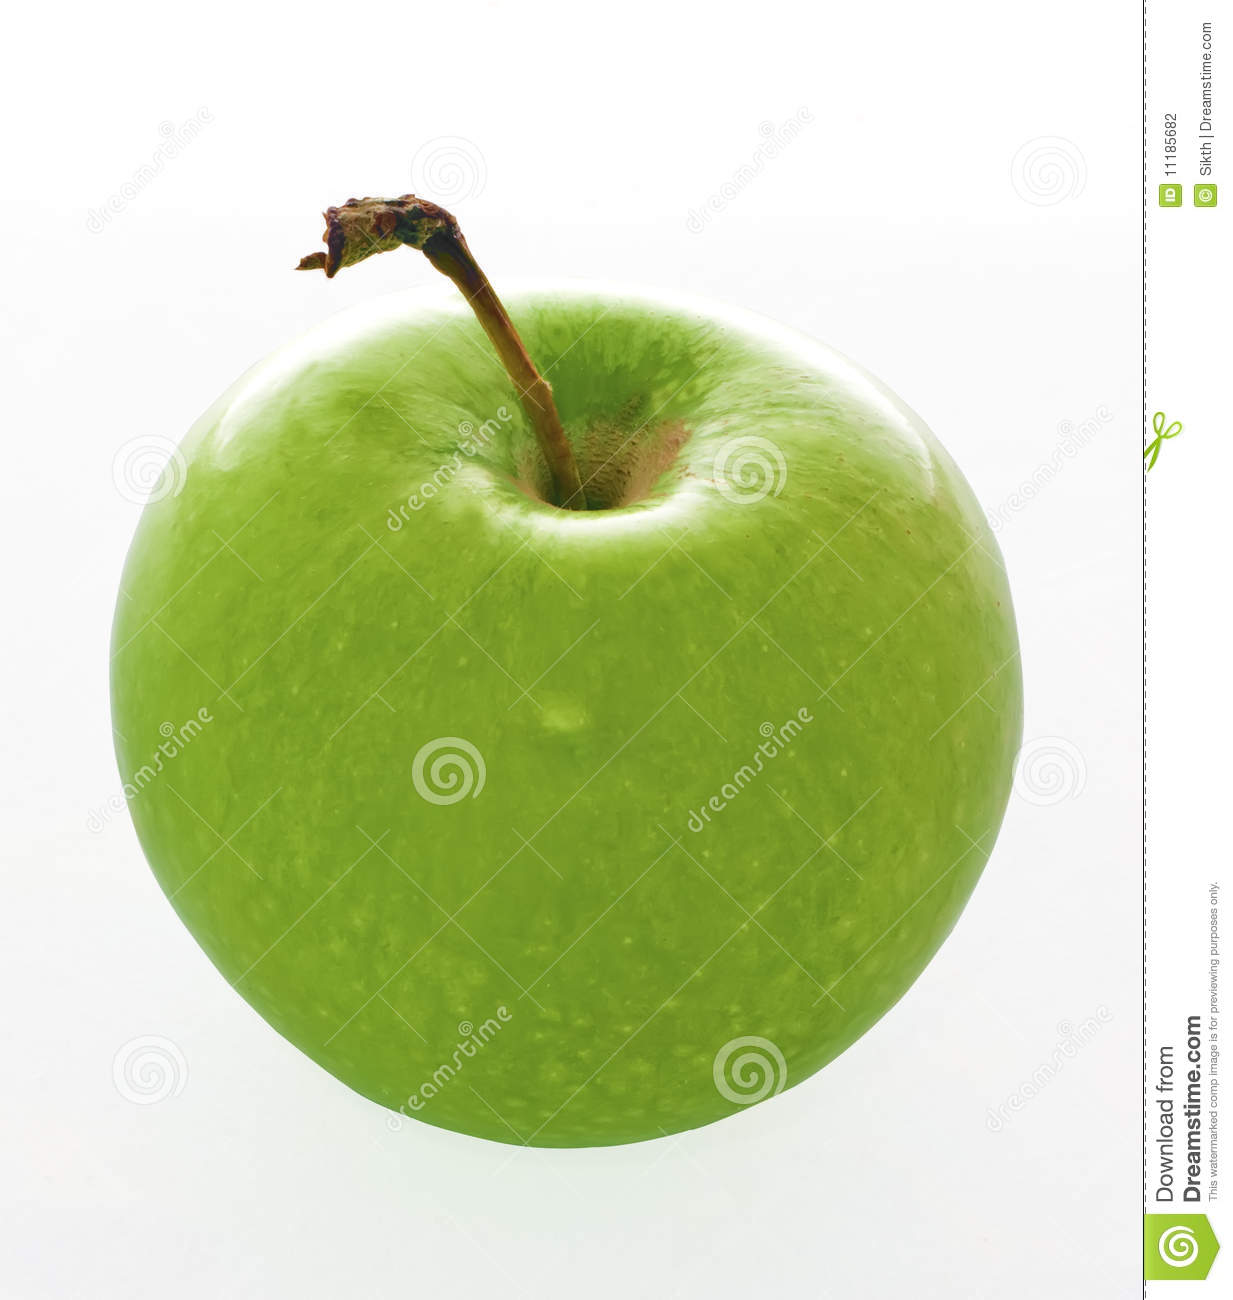 delicious green apple illustration - photo #20